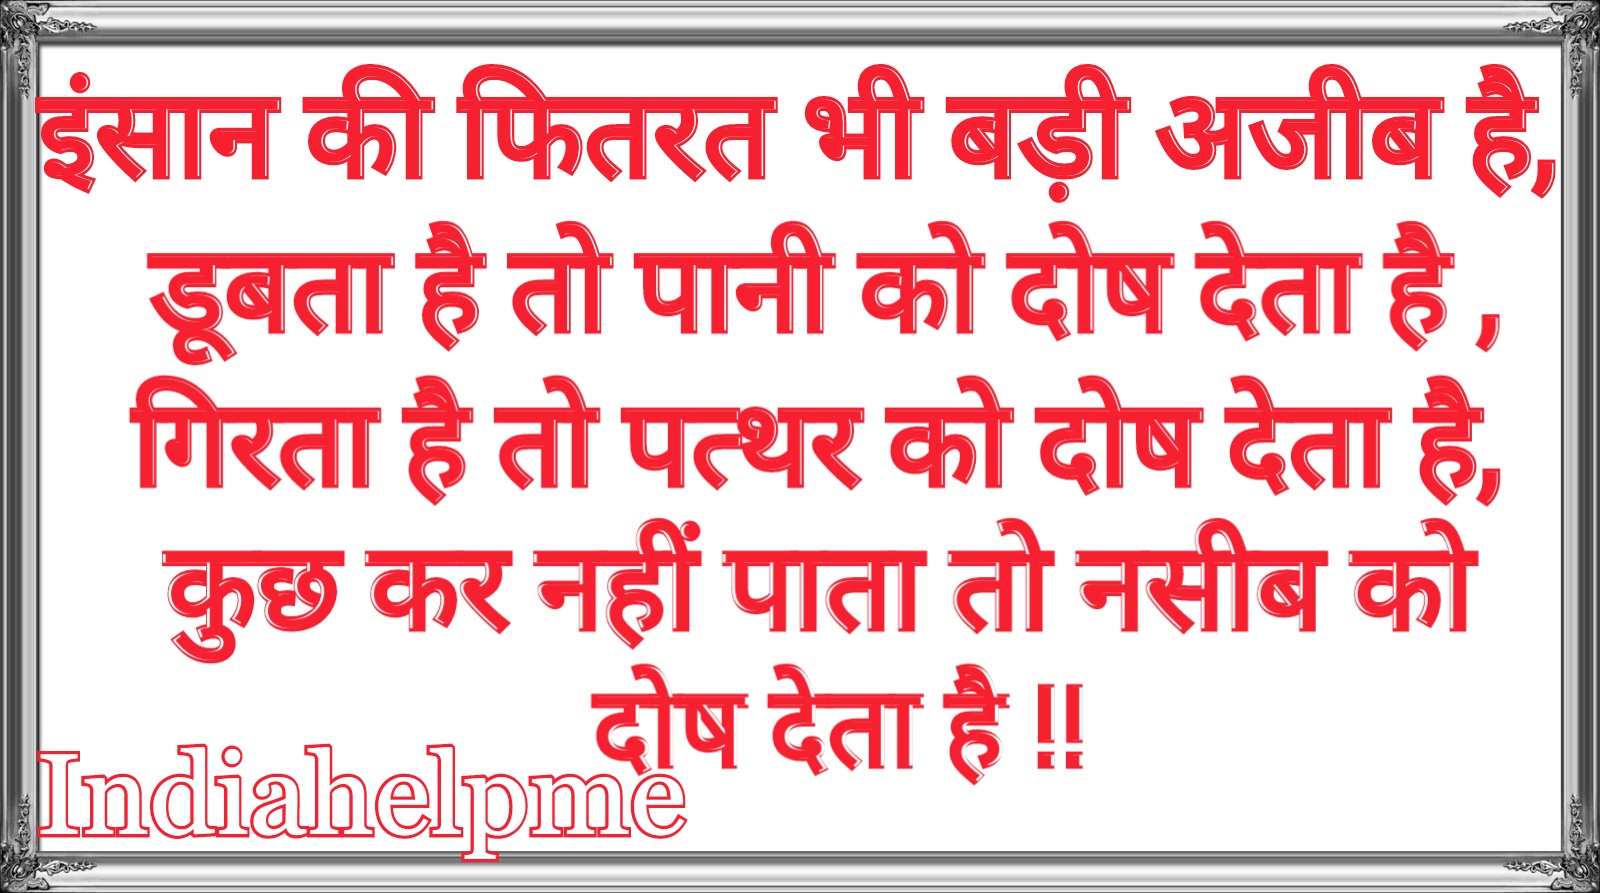 india help me: 121 golden thought of life in hindi हिंदी में